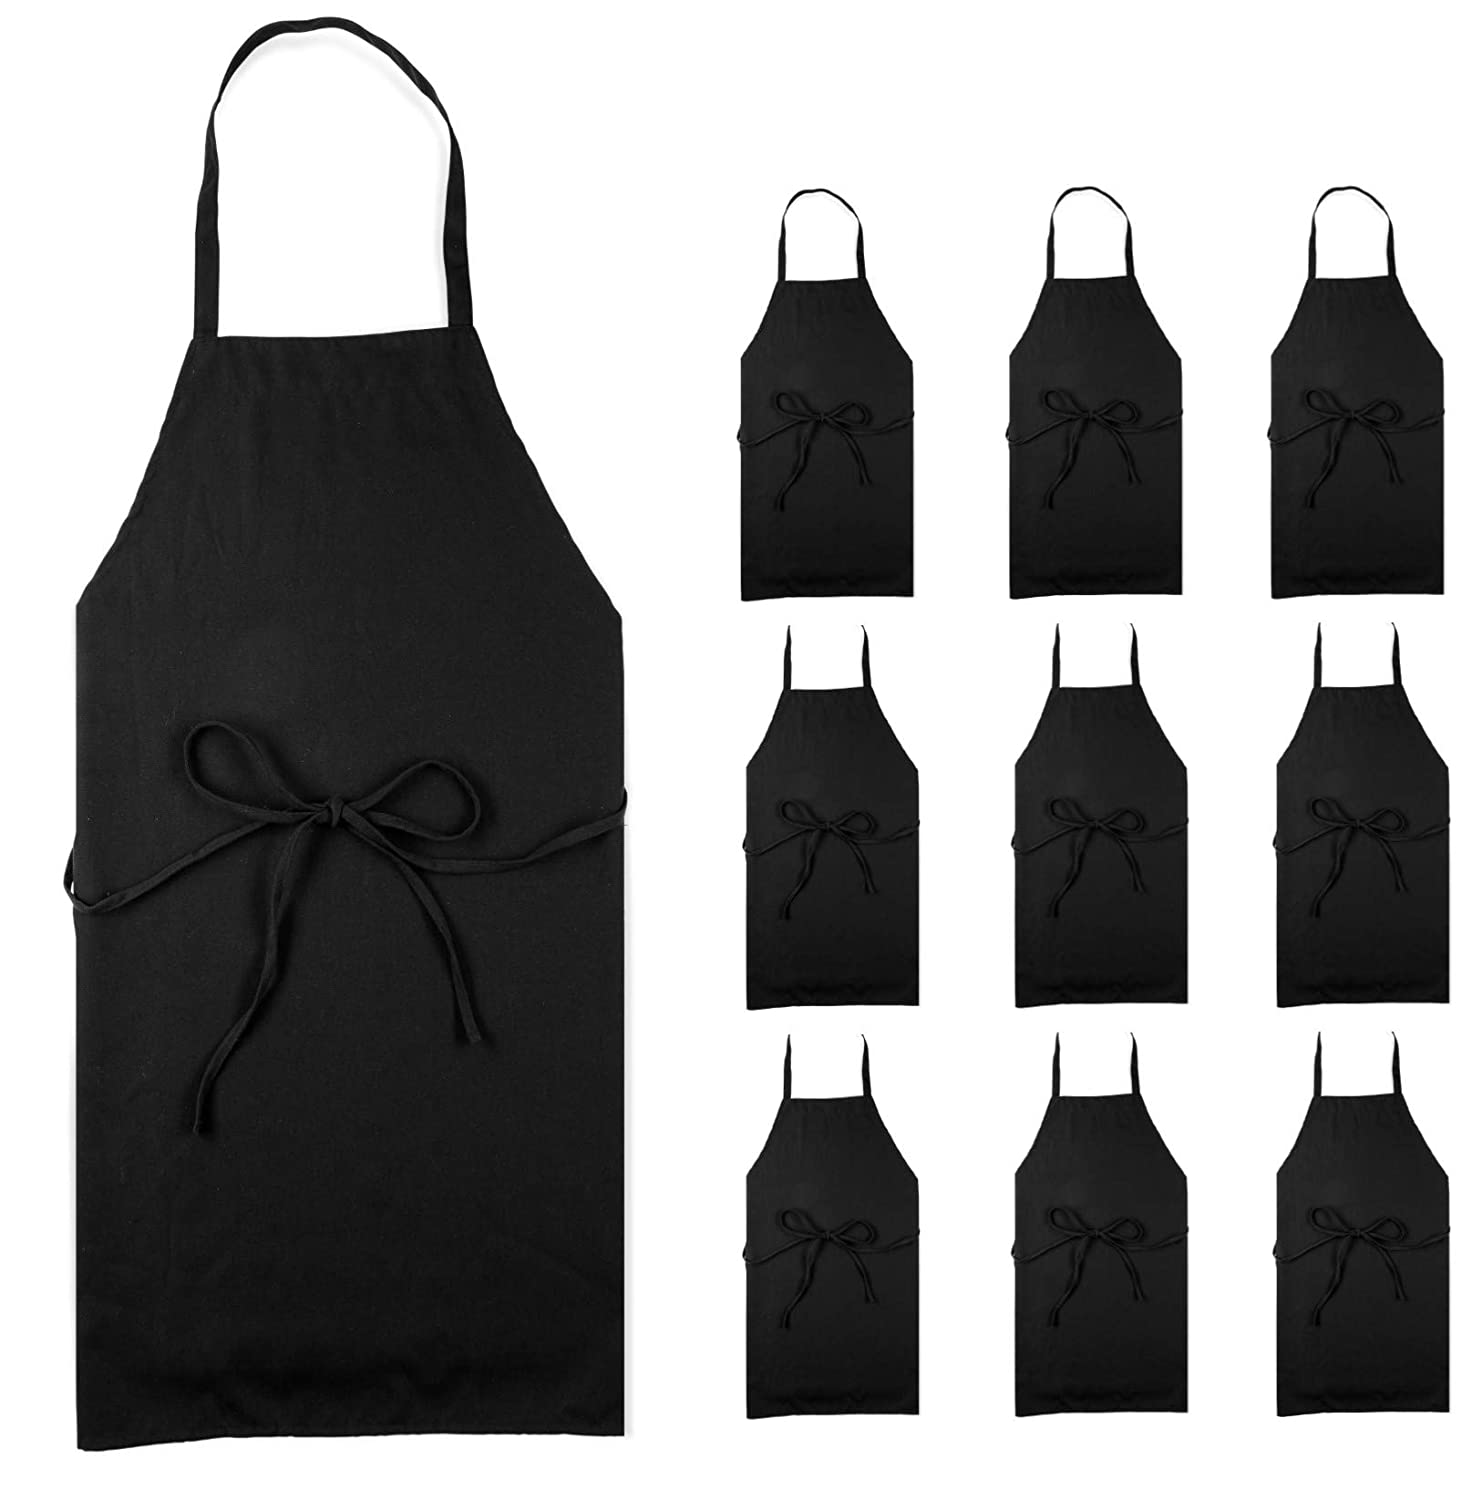 Professional Black Bib Aprons for Restaurant - Set of 12 Durable Adult Waitress Chef Kitchen Apron for women & men (Bulk 12 Pack - Black)